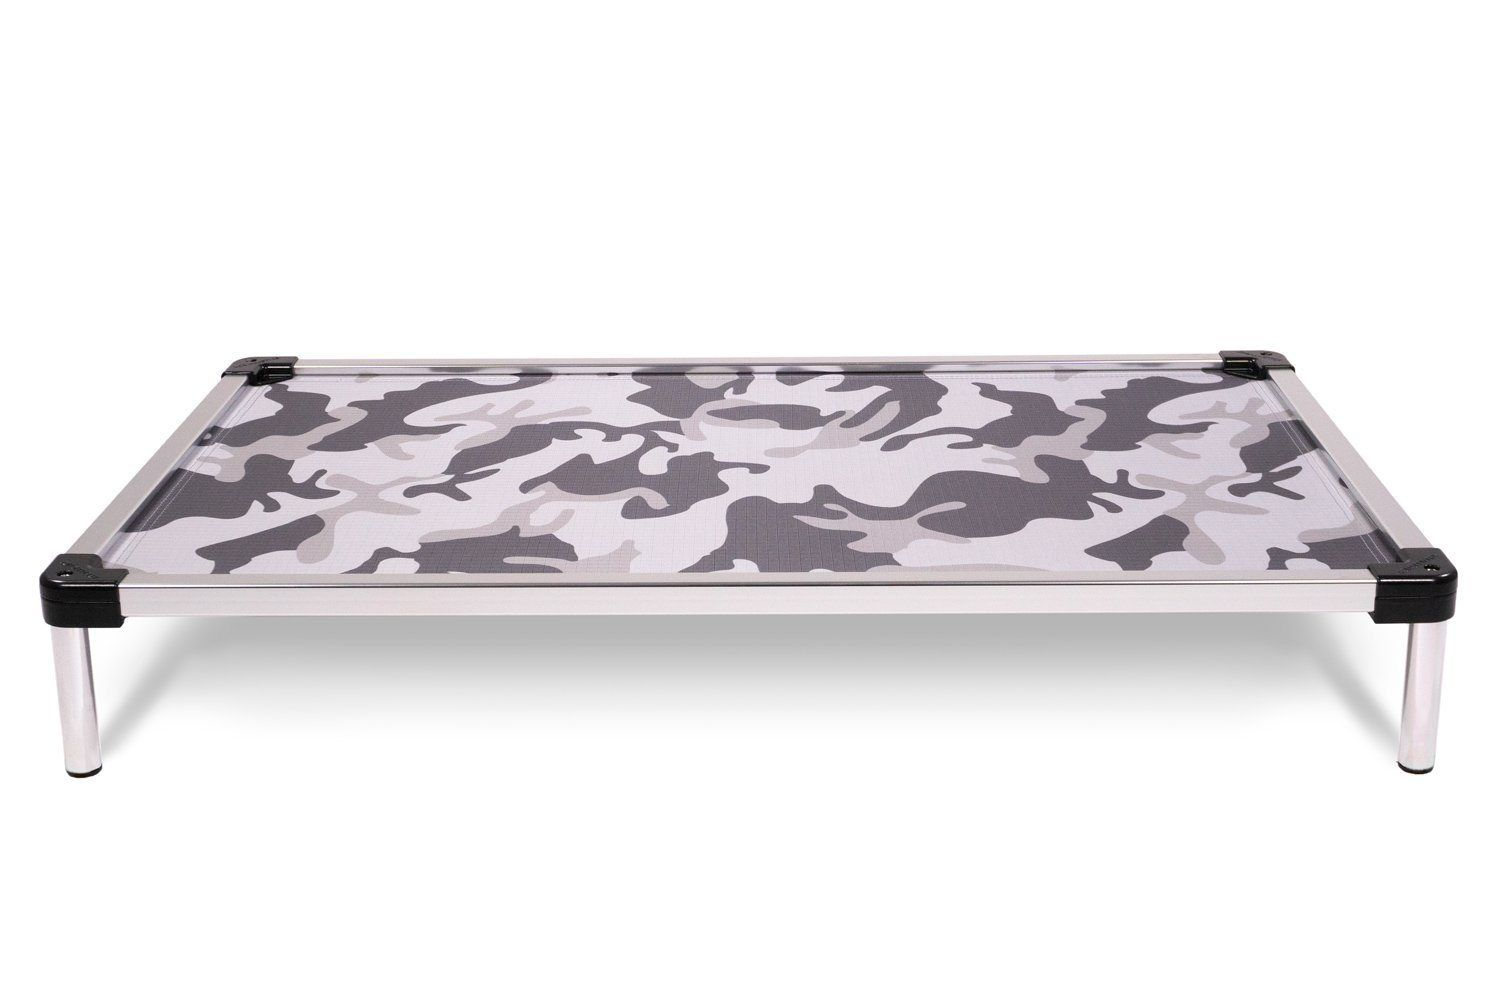 Chew Proof Elevated Dog Bed Indestructible Dog Beds K9 Ballistics In 2021 Elevated Dog Bed Dog Bed Indestructable Dog Bed